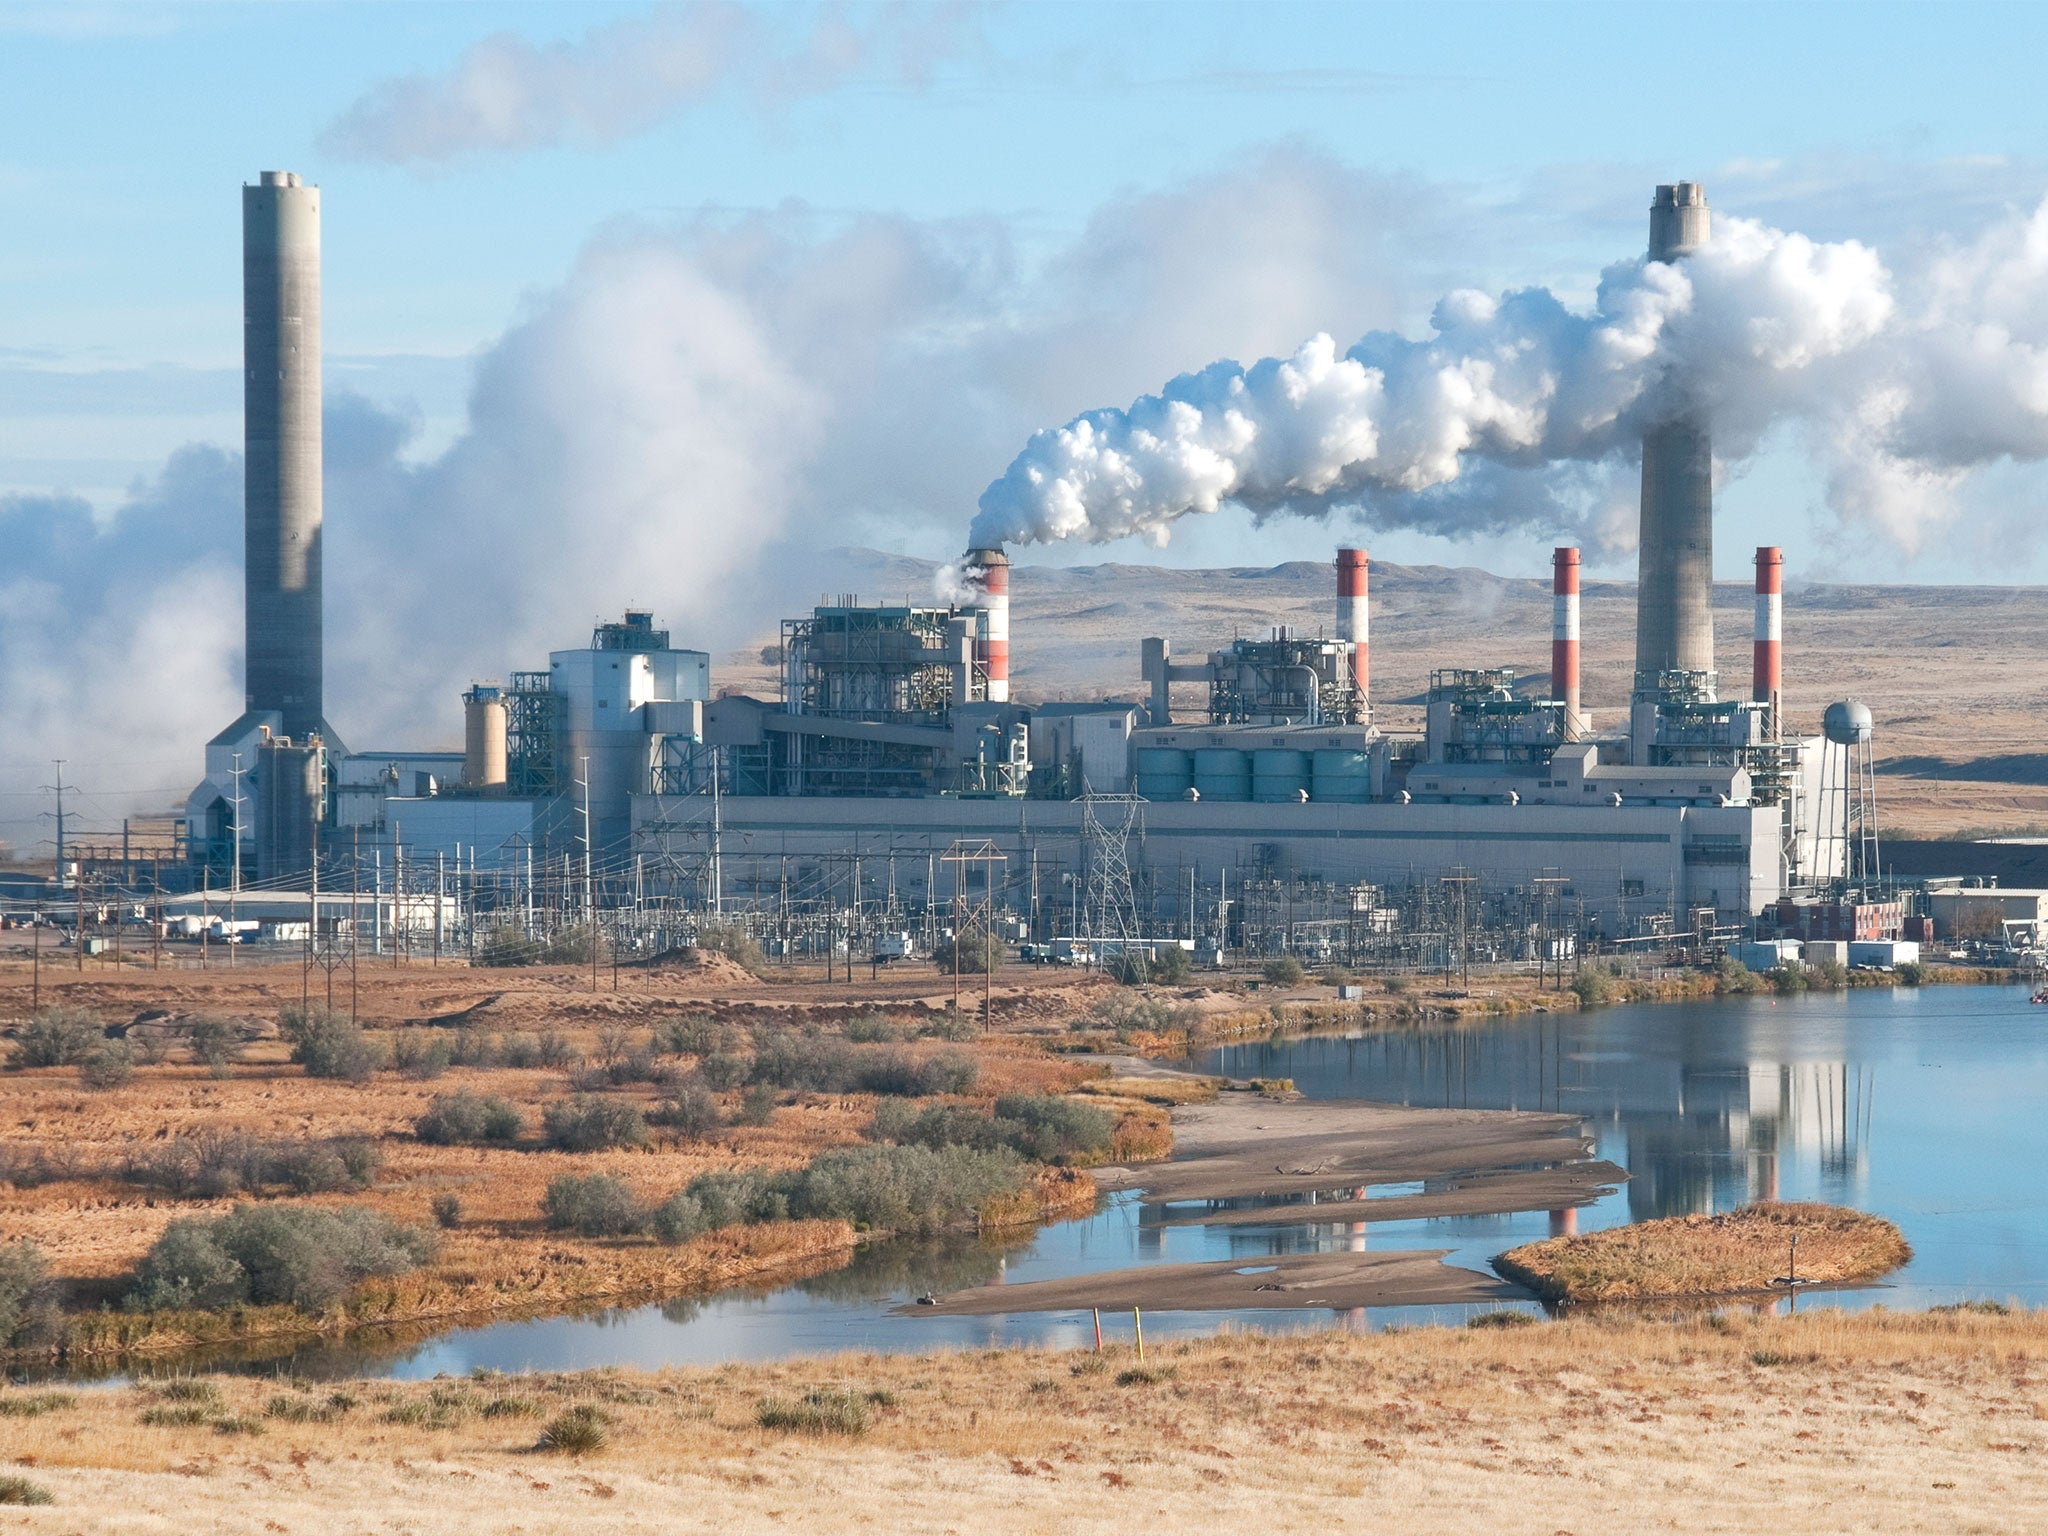 coal-fired power plants - latest news, breaking stories and comment